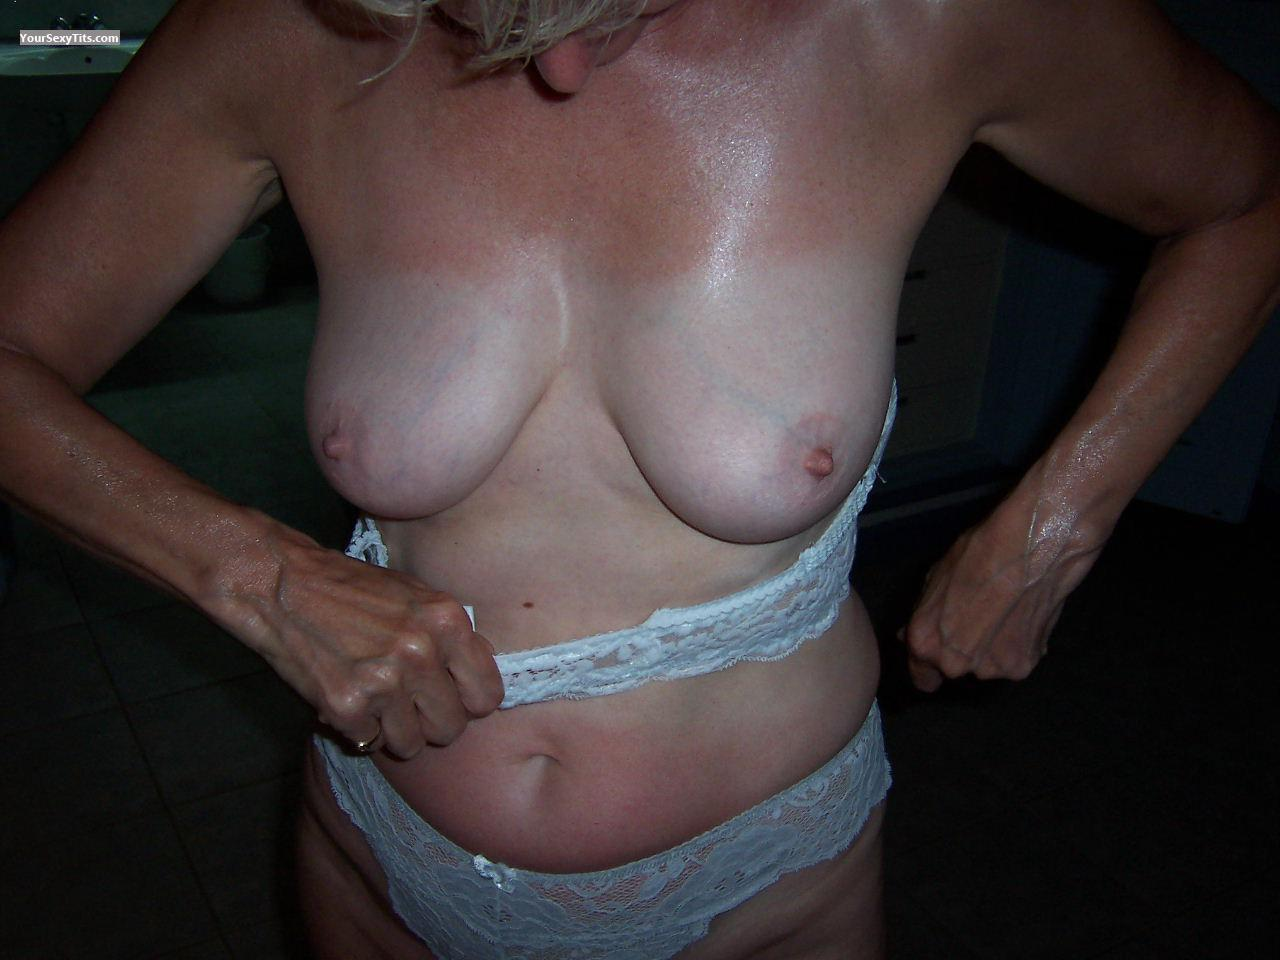 Tit Flash: My Tanlined Medium Tits - Bubblysally from United Kingdom